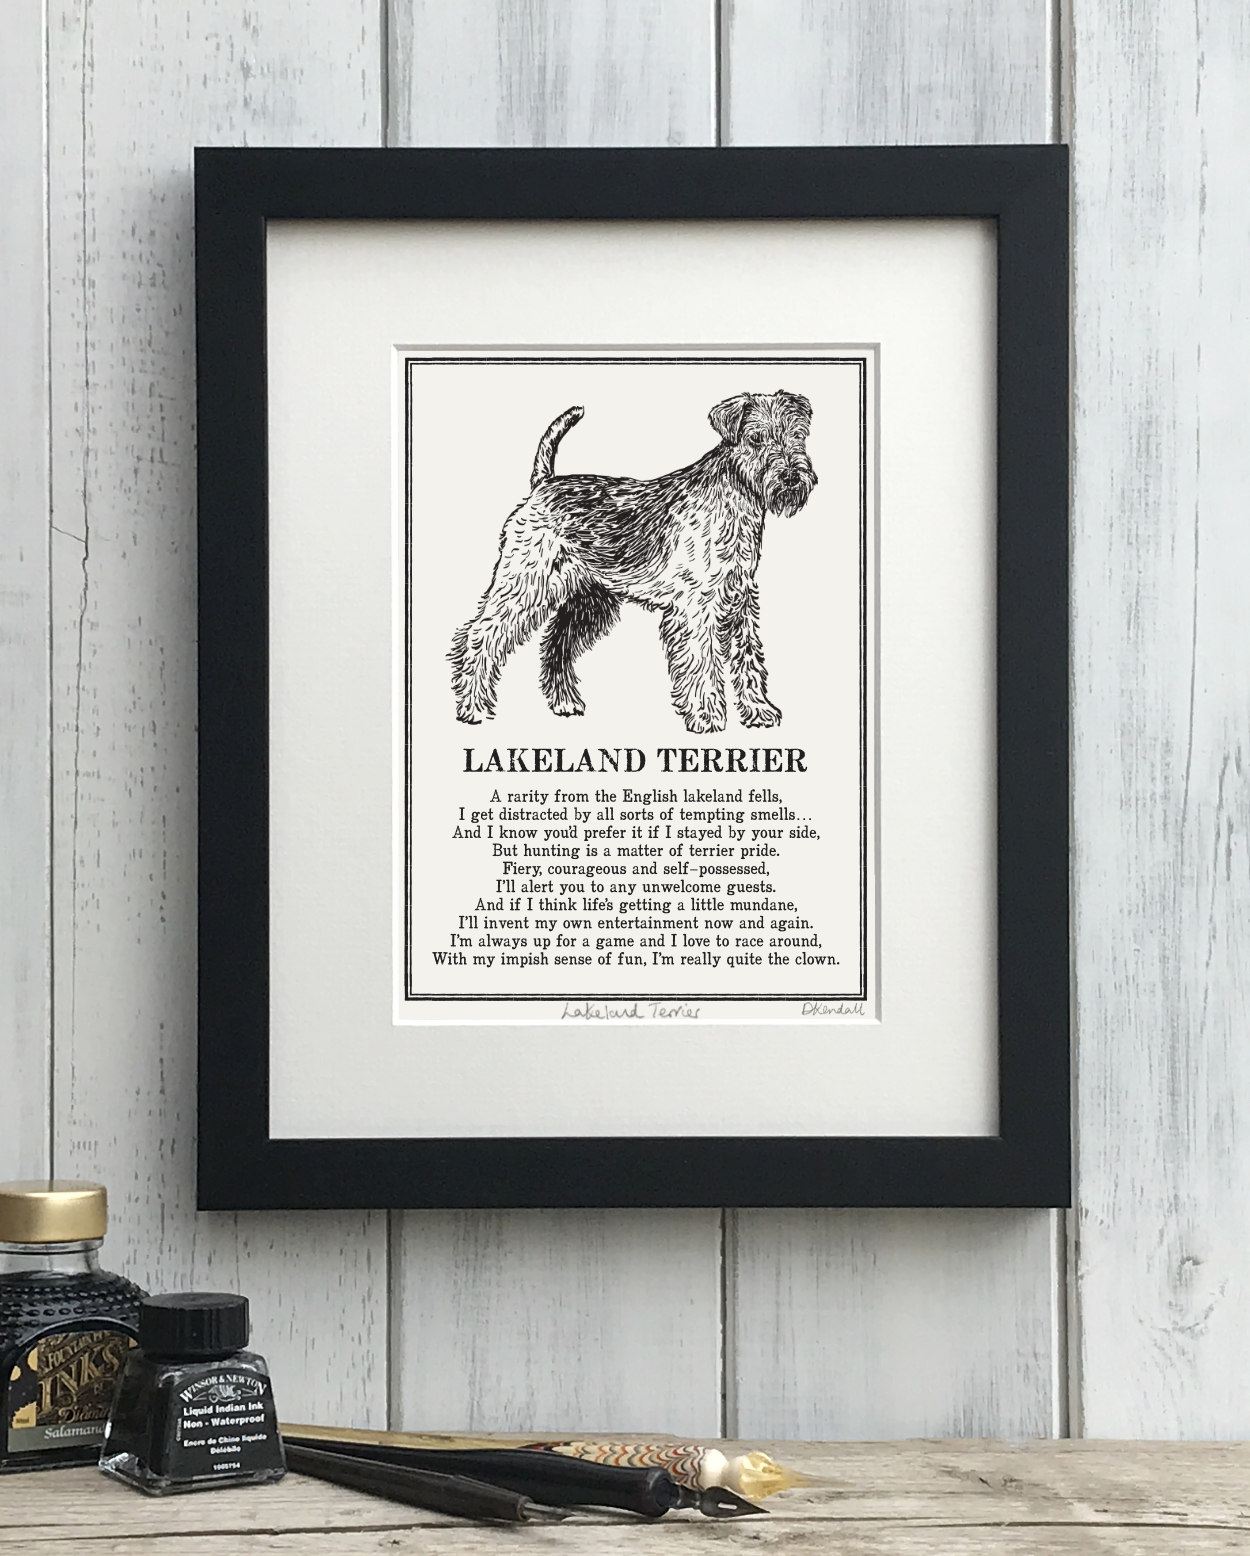 Lakeland Terrier Doggerel Illustrated Poem Art Print | The Enlightened Hound